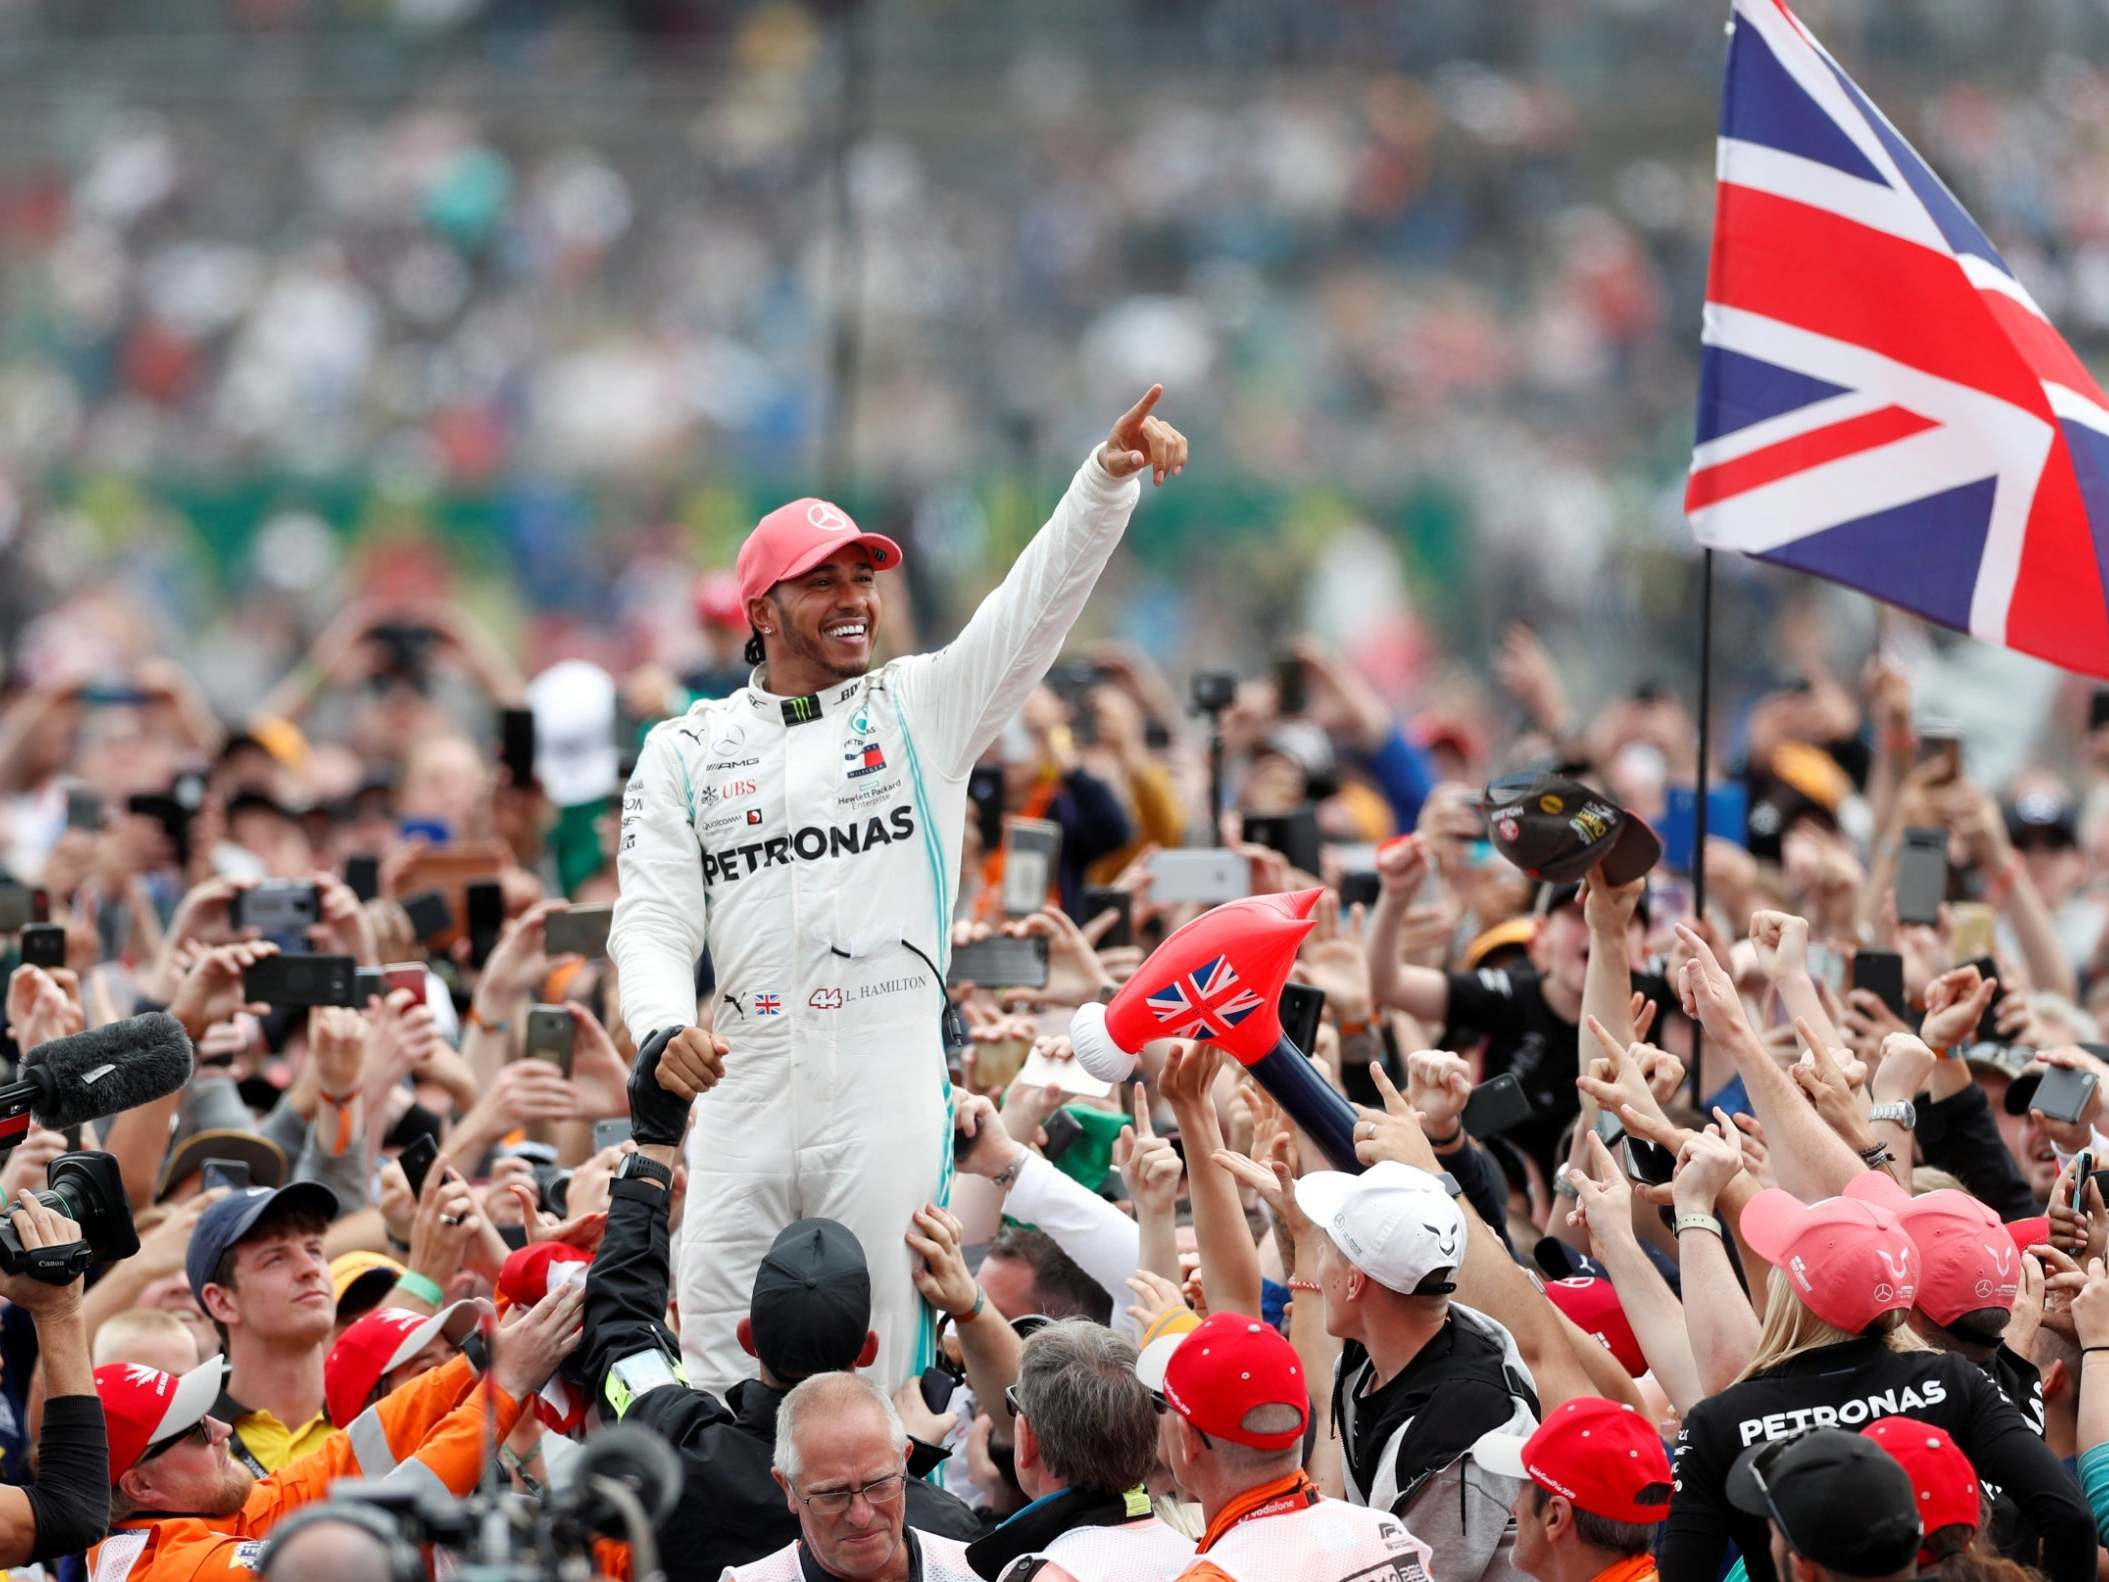 Lewis Hamilton omitted from New Year's Honours list again despite winning sixth F1 world championship